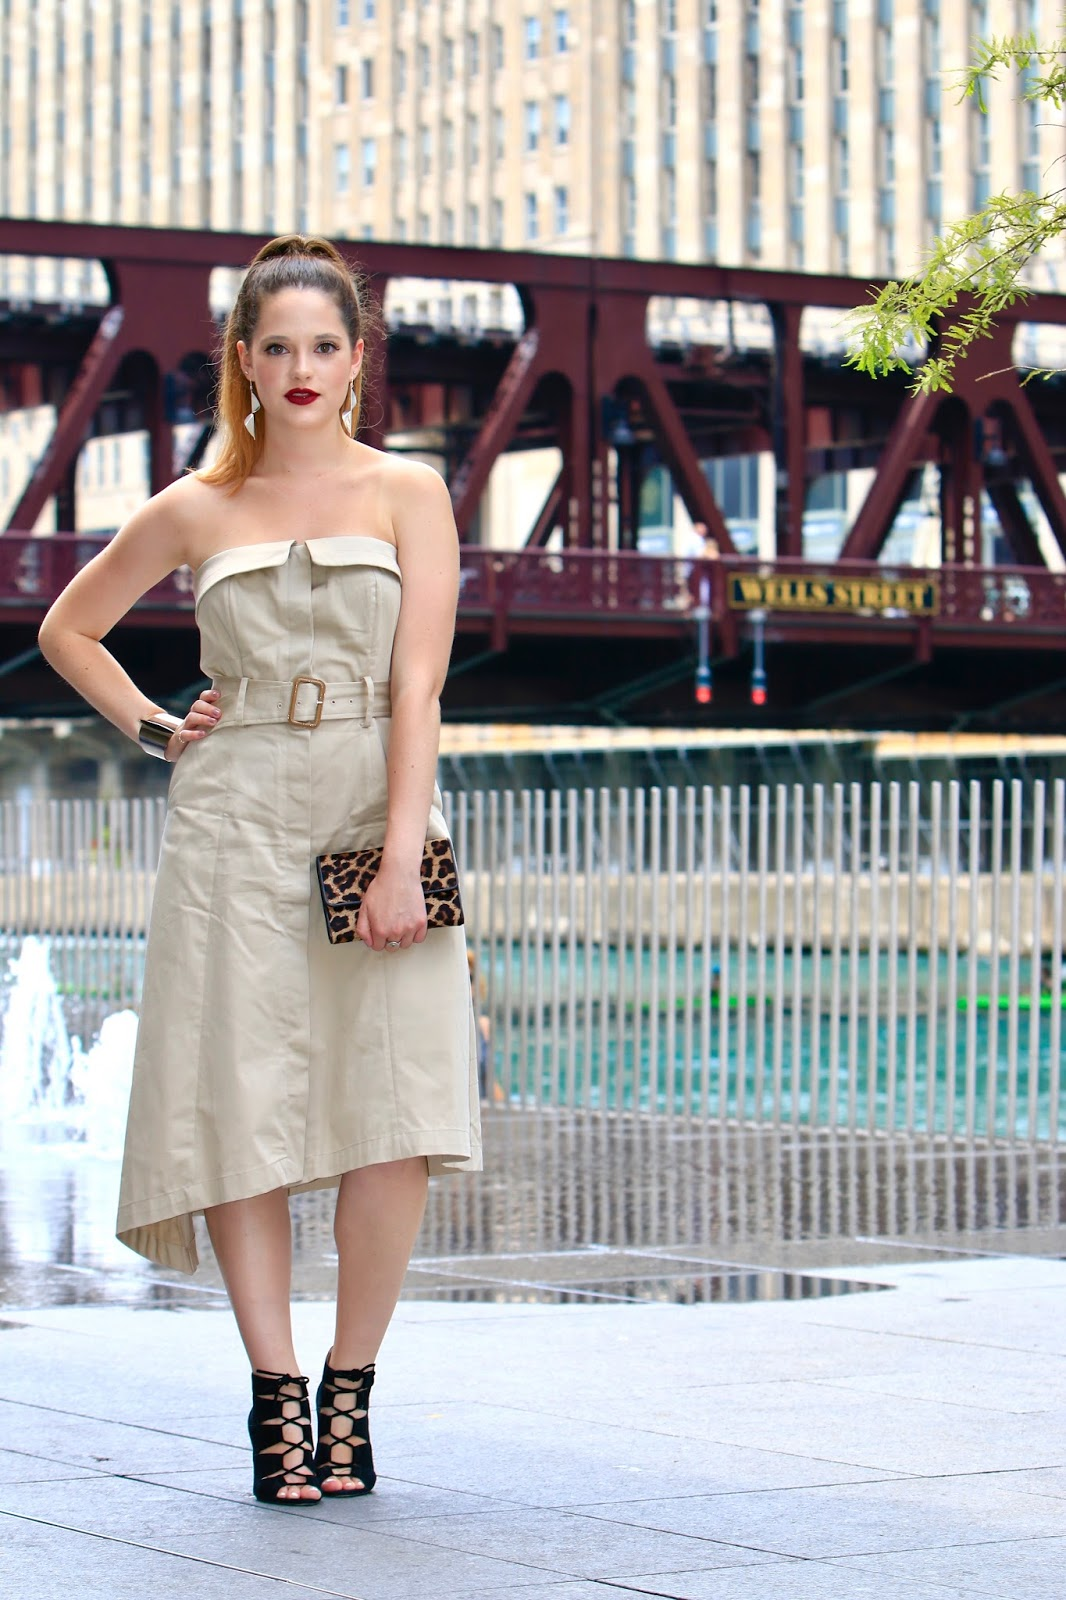 NYC Fashion blogger Kathleen Harper's date outfit ideas